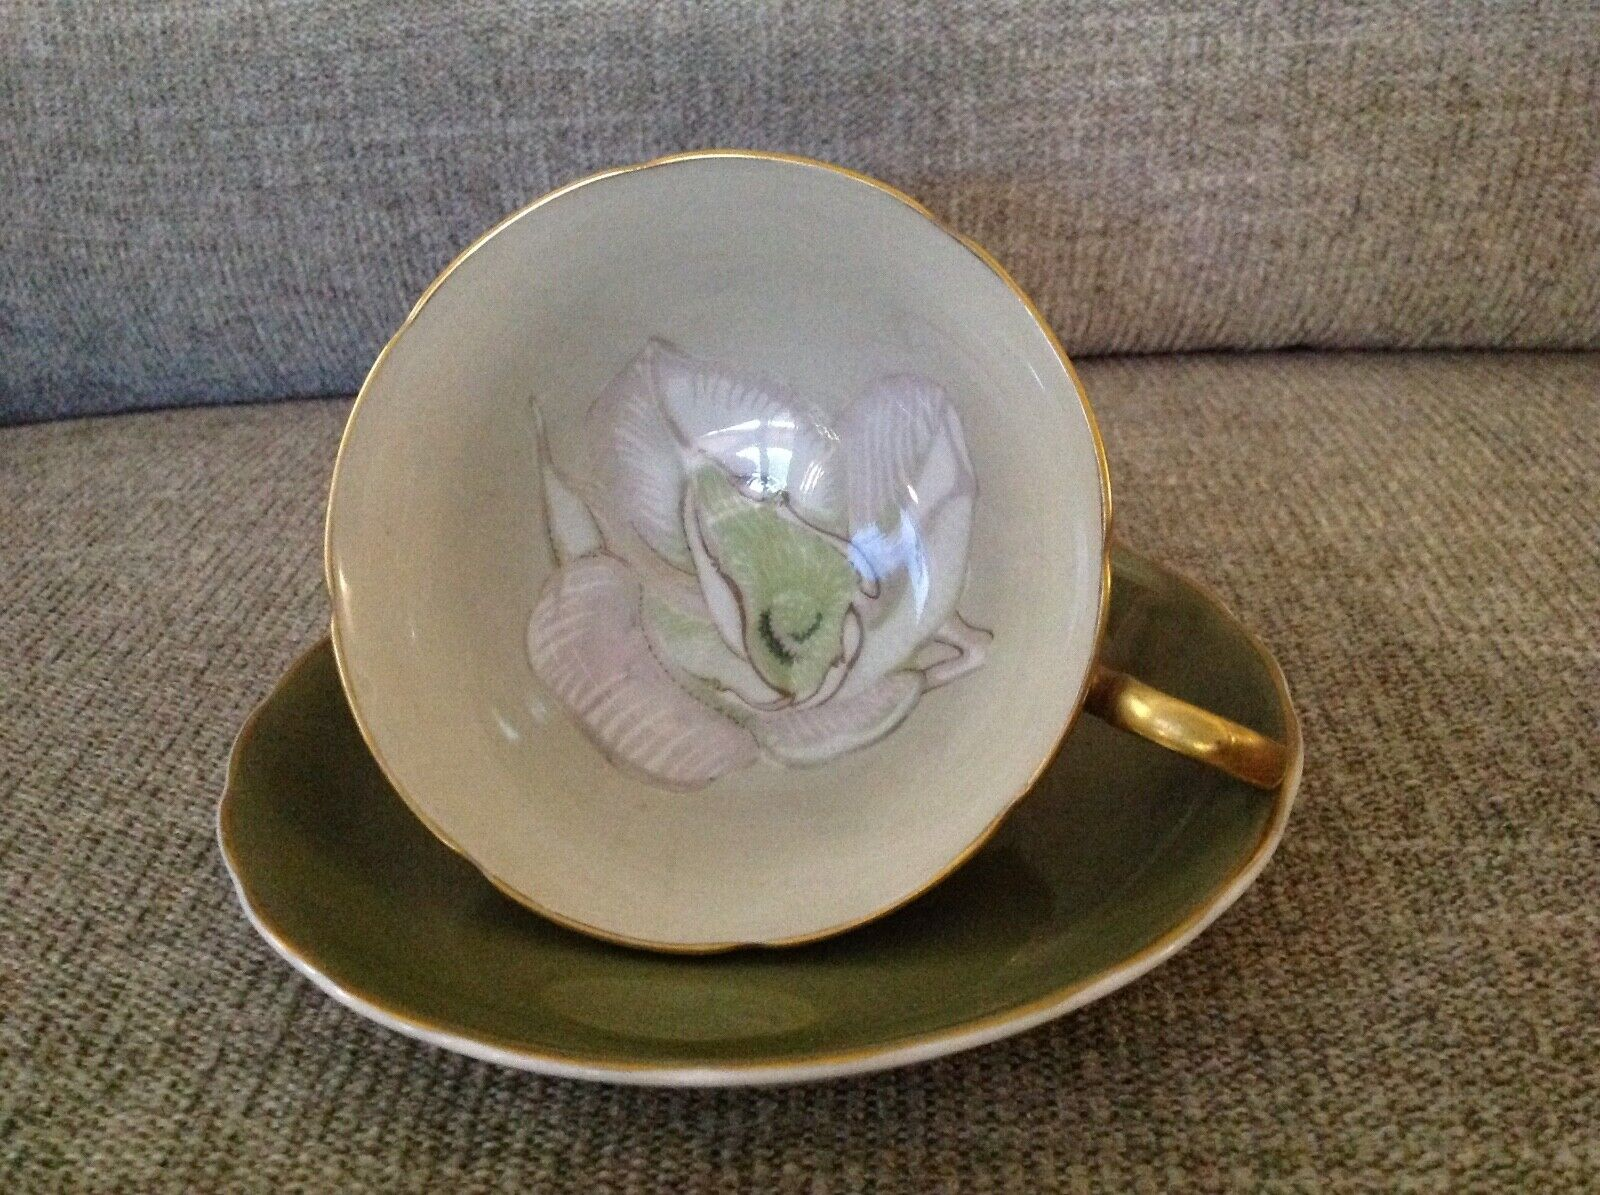 Vintage England Fine Bone China Tea Cup Saucer - $14.95